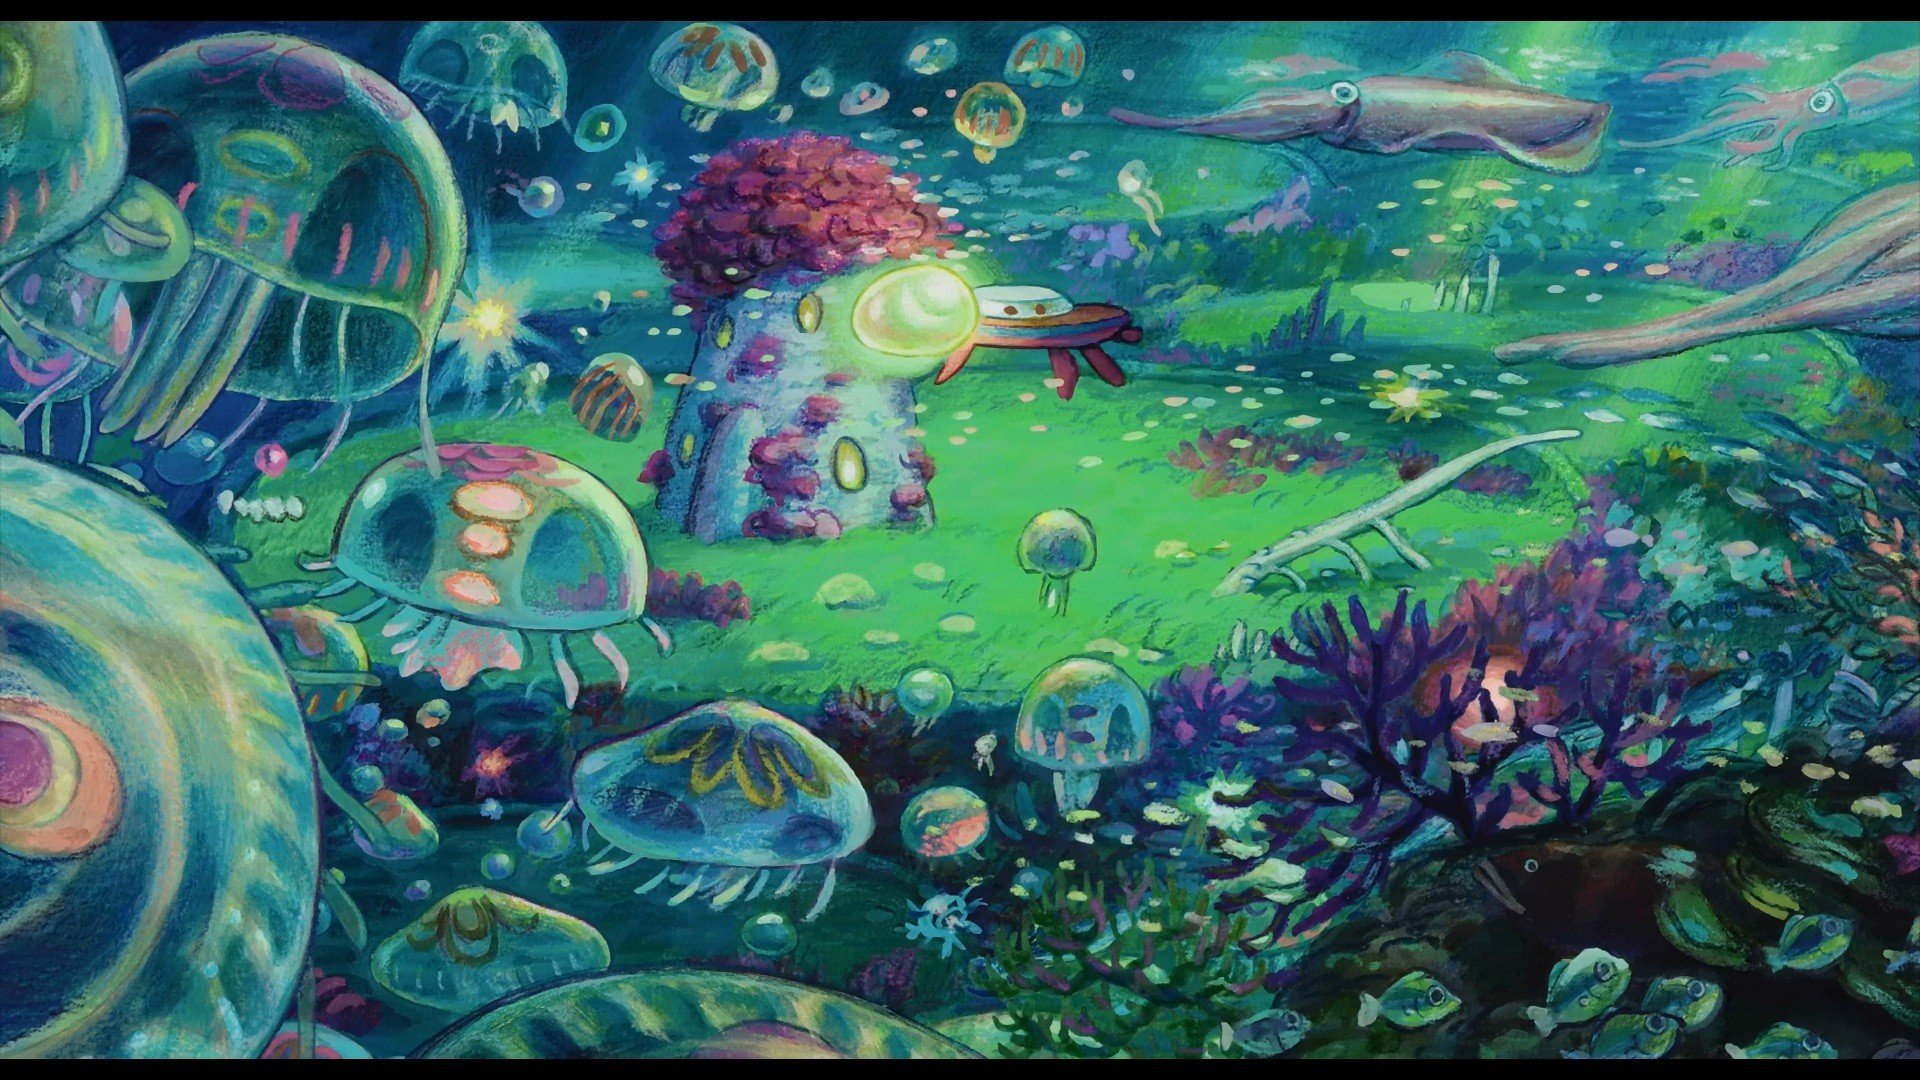 Hd Ghibli Wallpaper 1080: Ponyo HD Wallpaper